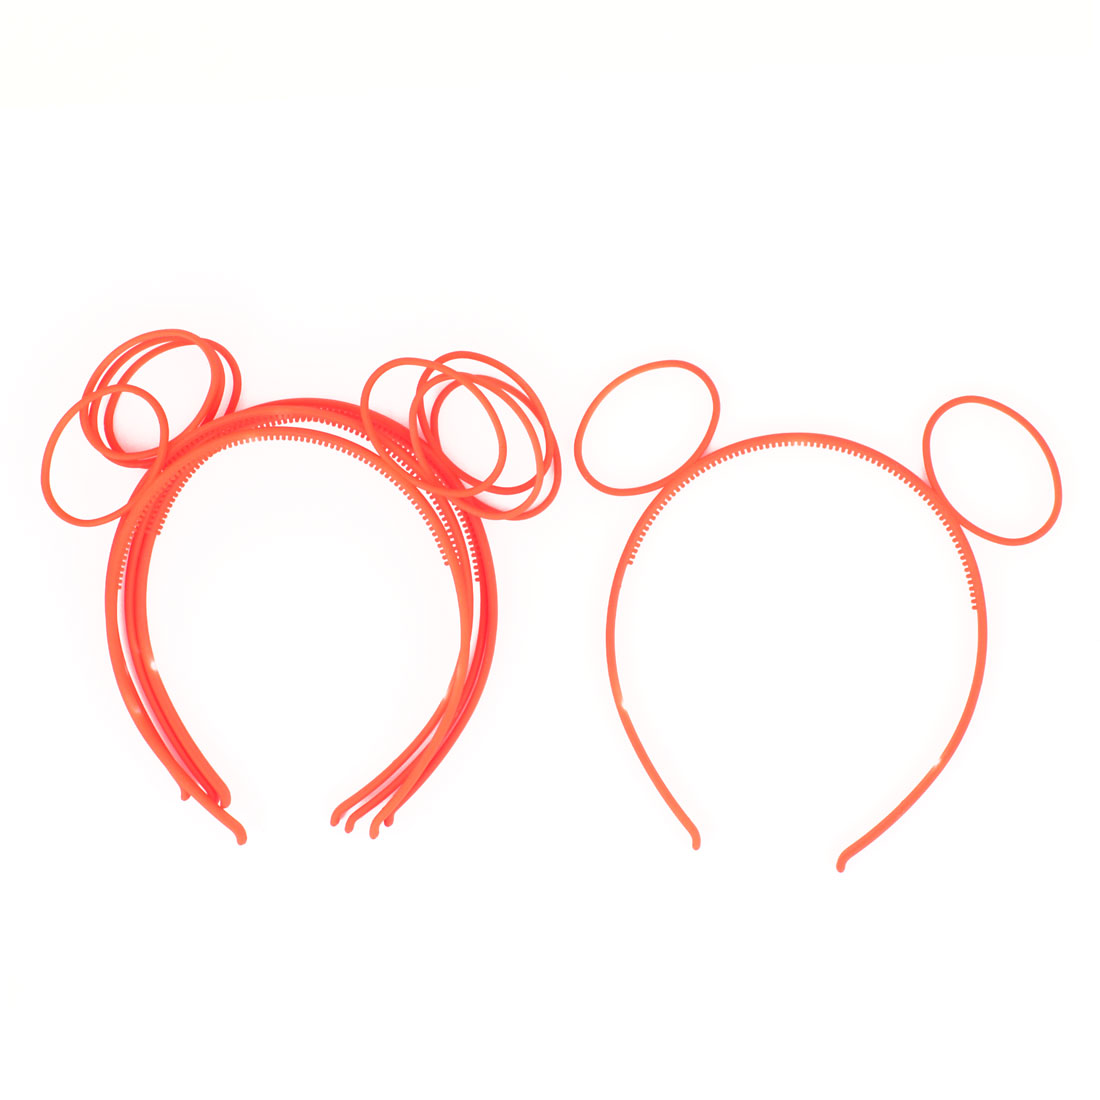 "0.2"" Width Plastic Ears Detail Hair Decor Hairband Hoop Orange Red 5 Pcs"